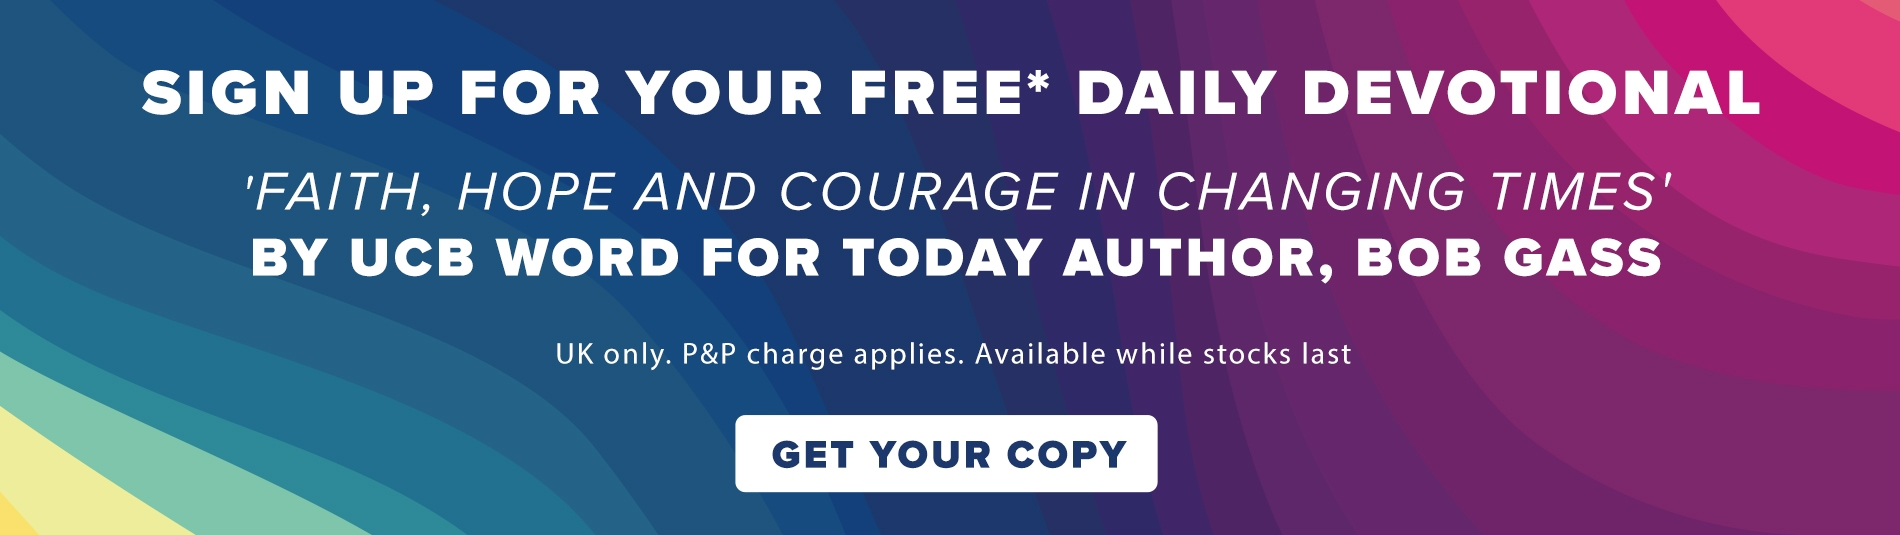 Sign up for your free daily devotional - 90 days of Faith, Hope and Courage in changing times.